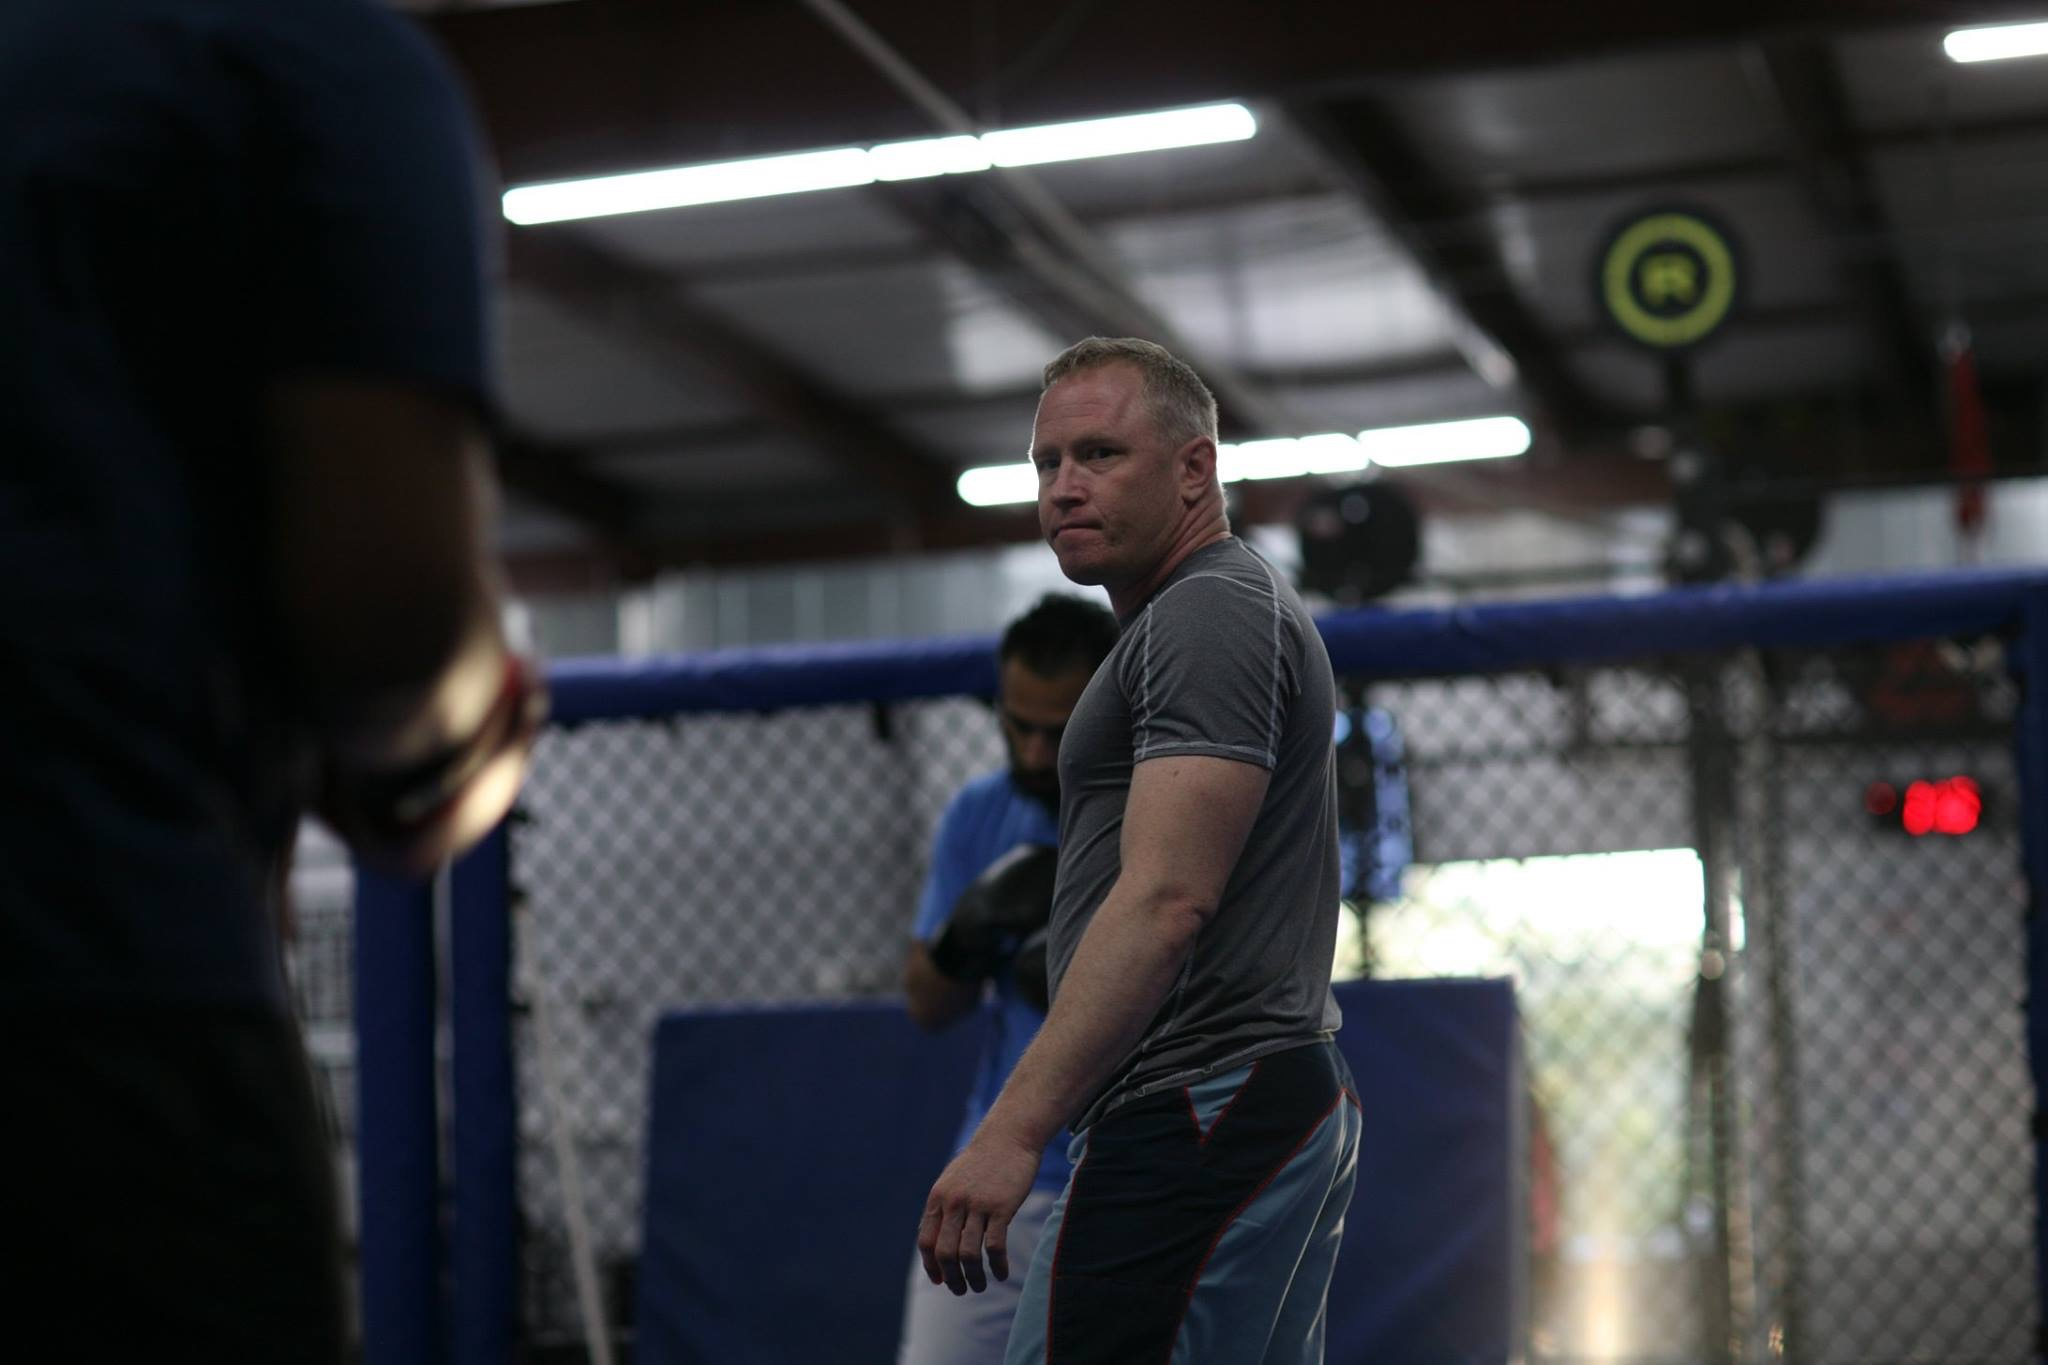 Coach Ted Leiner - Ted has been Dalton's striking coach since day one of his move to Forged Fitness. He is the man responsible for the technique and power that has Dalton rising to the top of the MMA ranks.Ted has been training in Muay Thai for 20 years and has been teaching Muay Thai at Forged Fitness since the very beginning, a little over 9 years ago.He has trained numerous fighters for competitions and has fought at the amateur level himself. Ted's classes focus on solid technique and perfect practice.